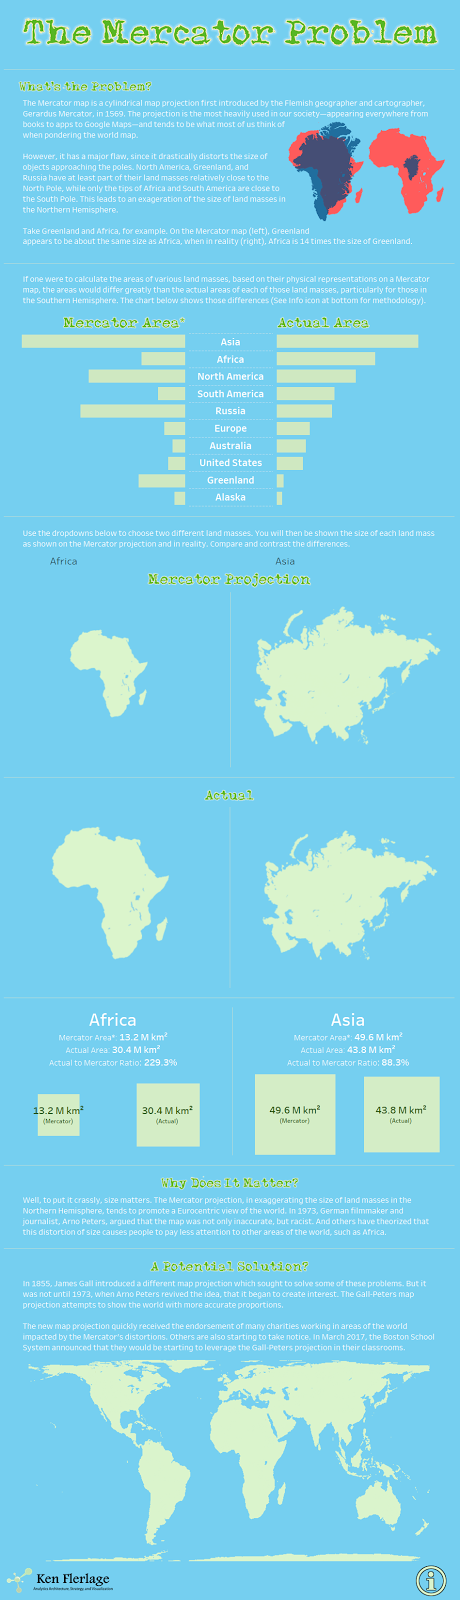 The Mercator Problems